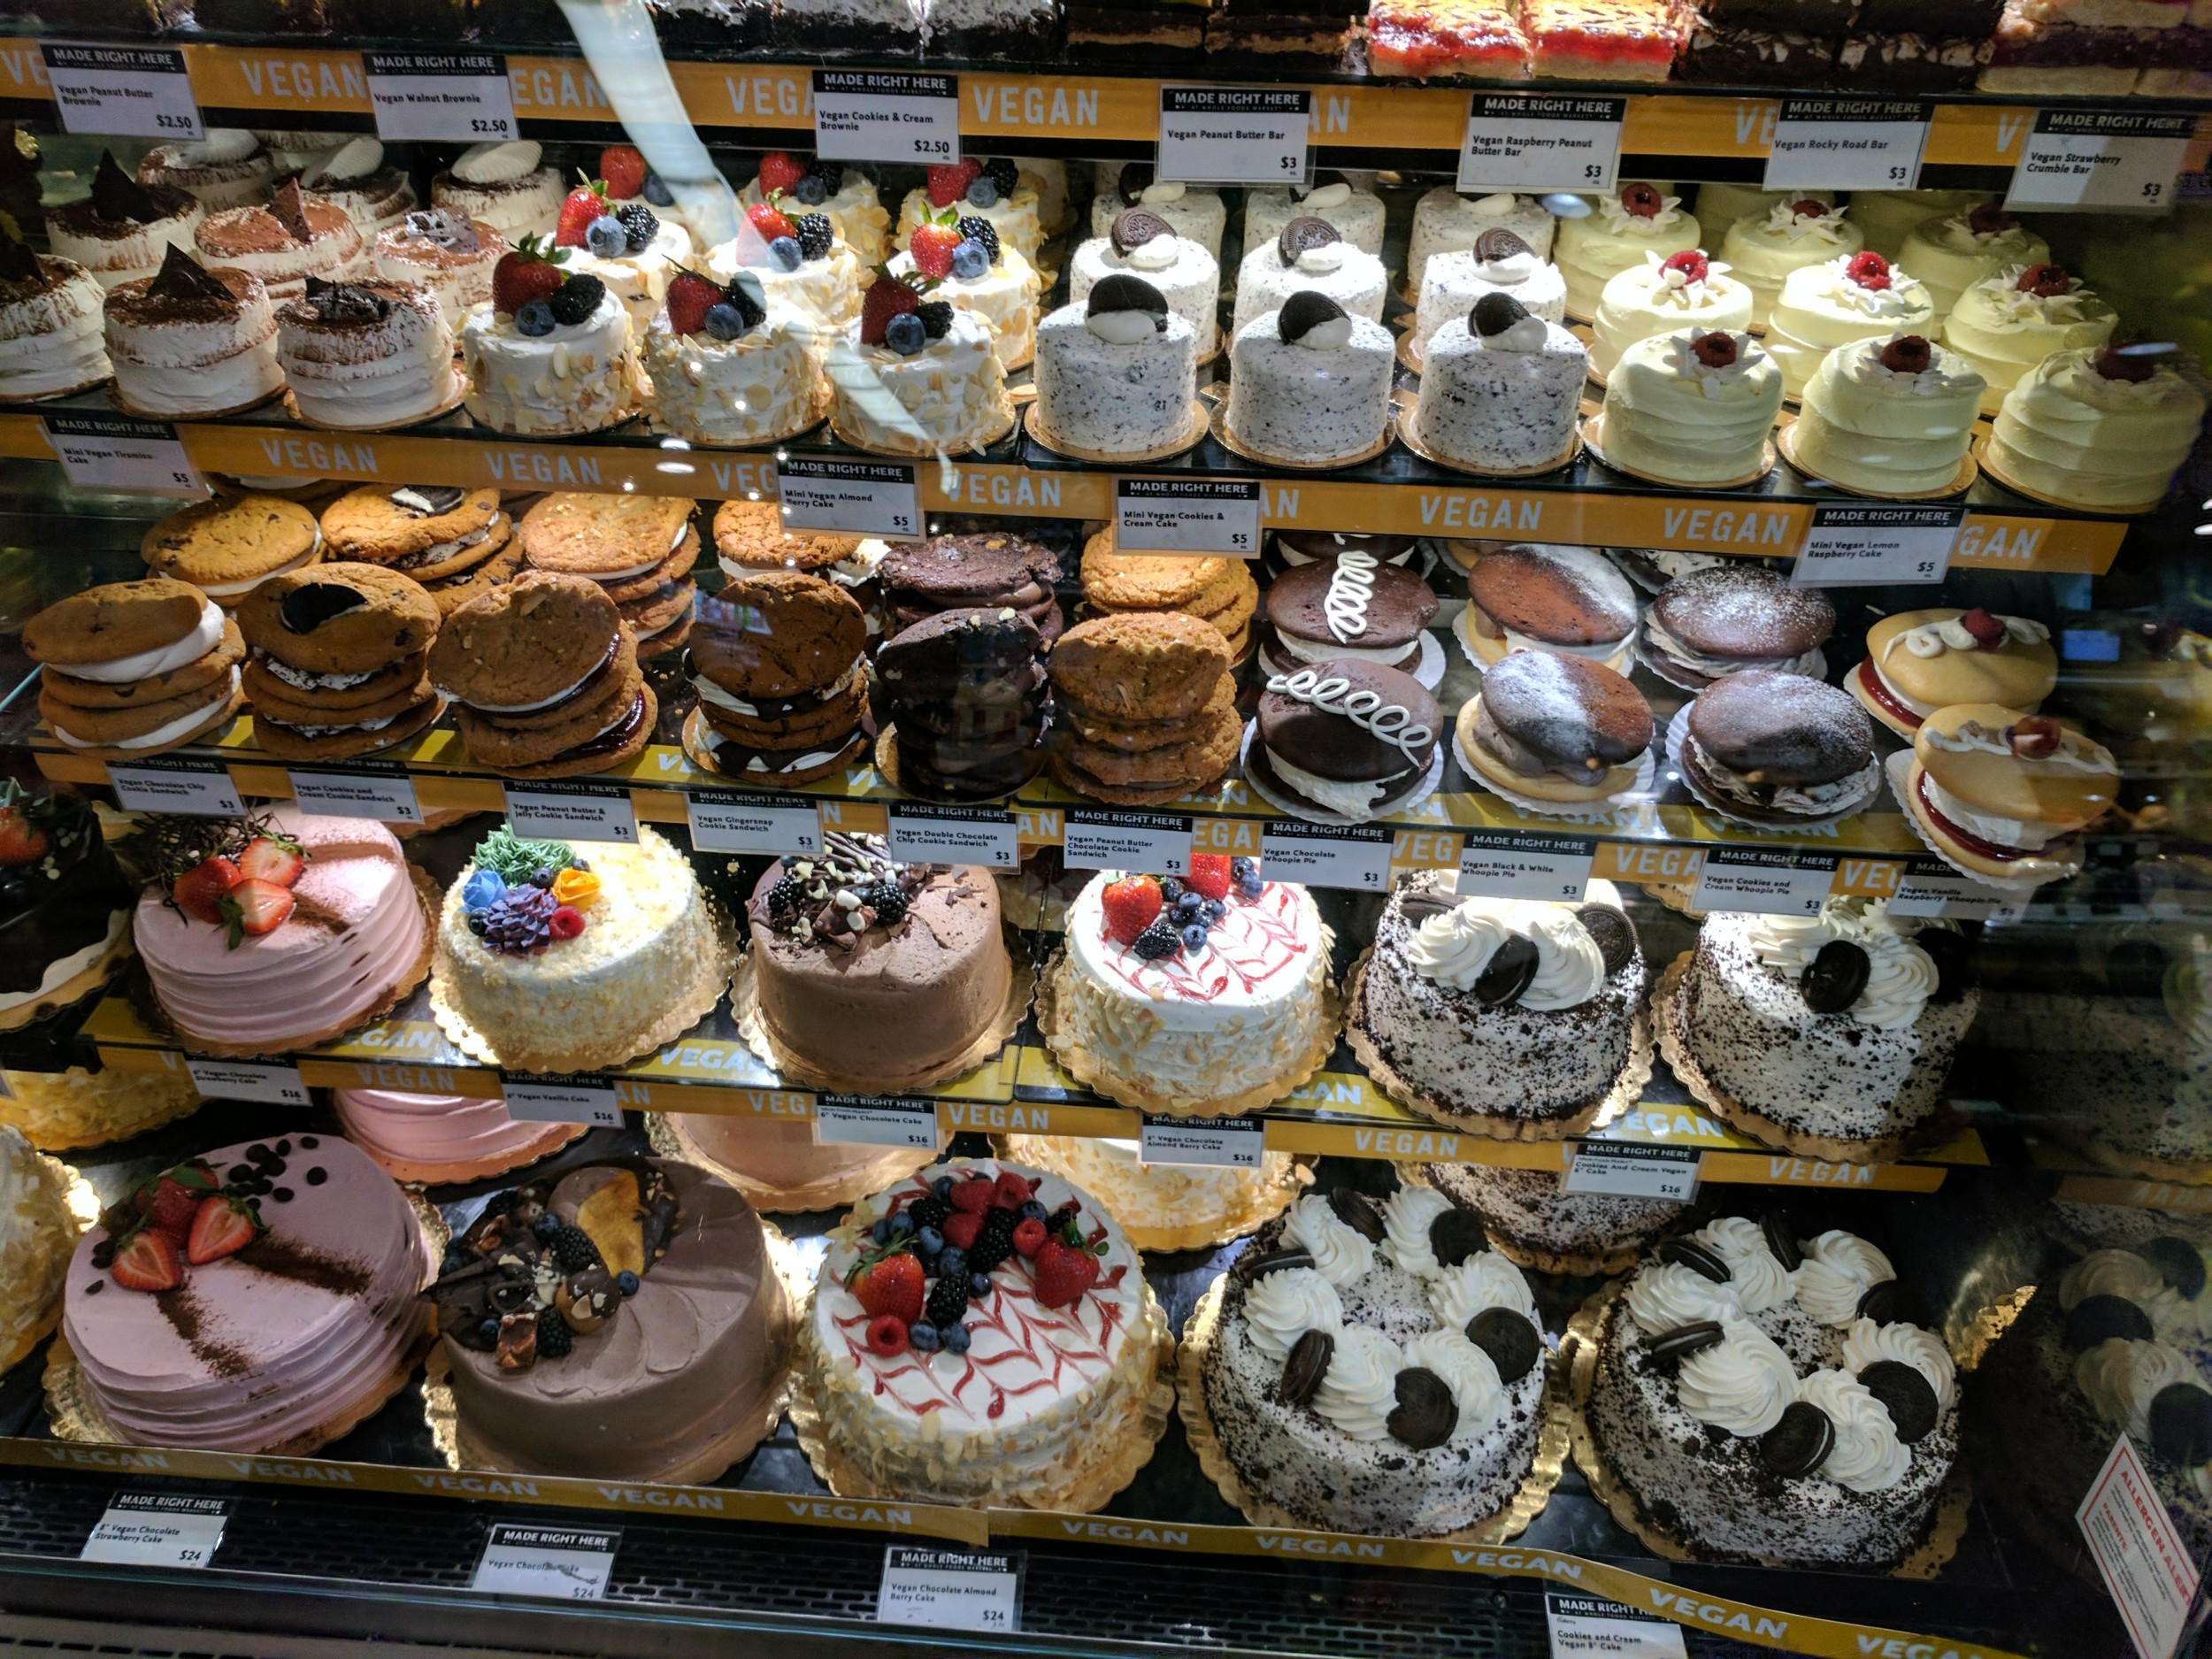 Vegan Desserts At Whole Foods  Vegan Adventures in California